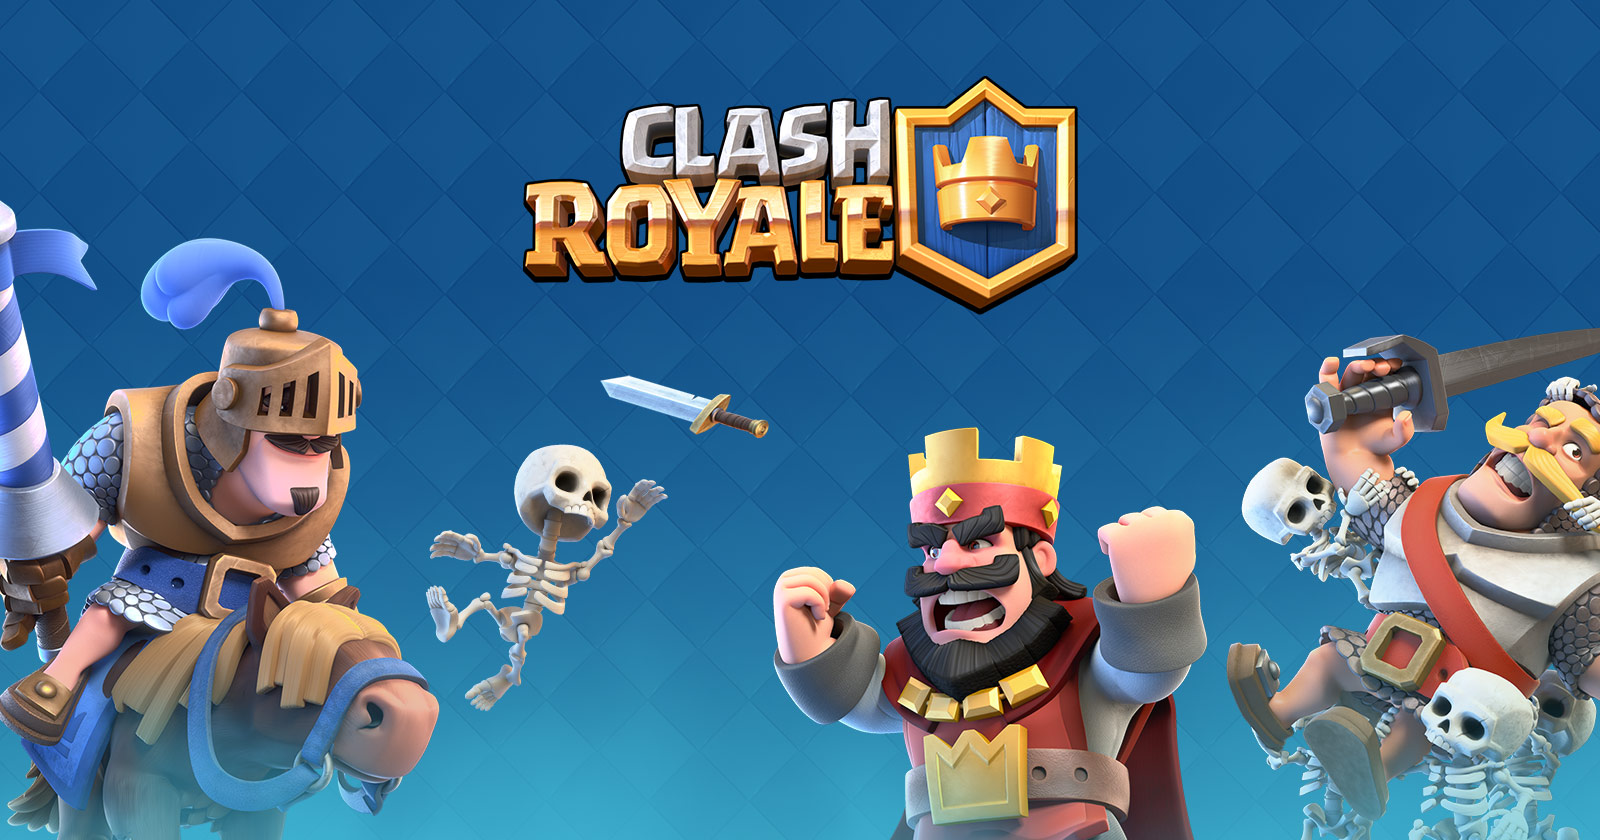 2v2 Feature Will Come To Clash Royale Next Month